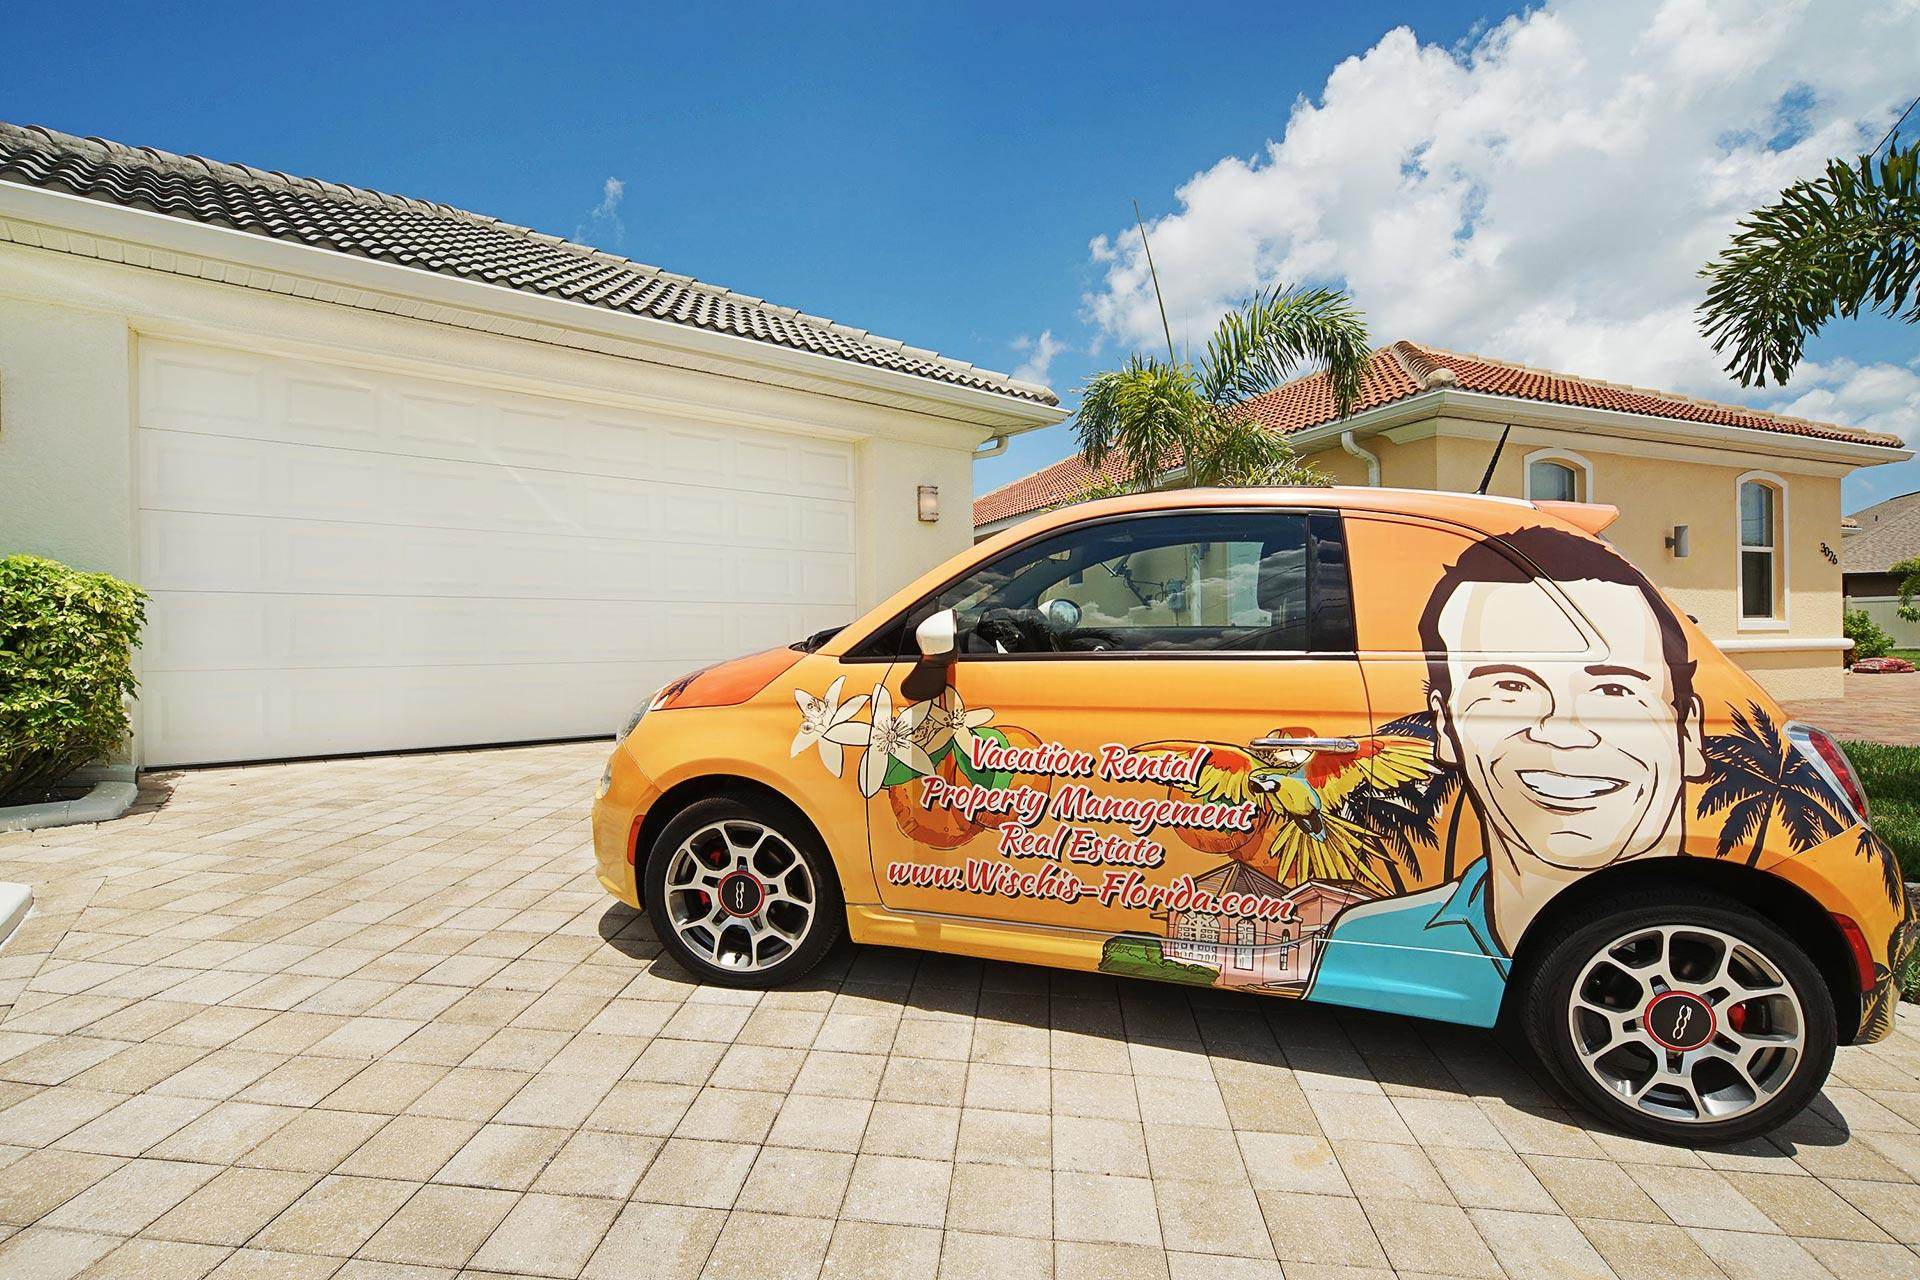 Wischis Florida Home - Vacation Rentals Cape Coral I Property Management I Real Estate I Wischis Fiat 500